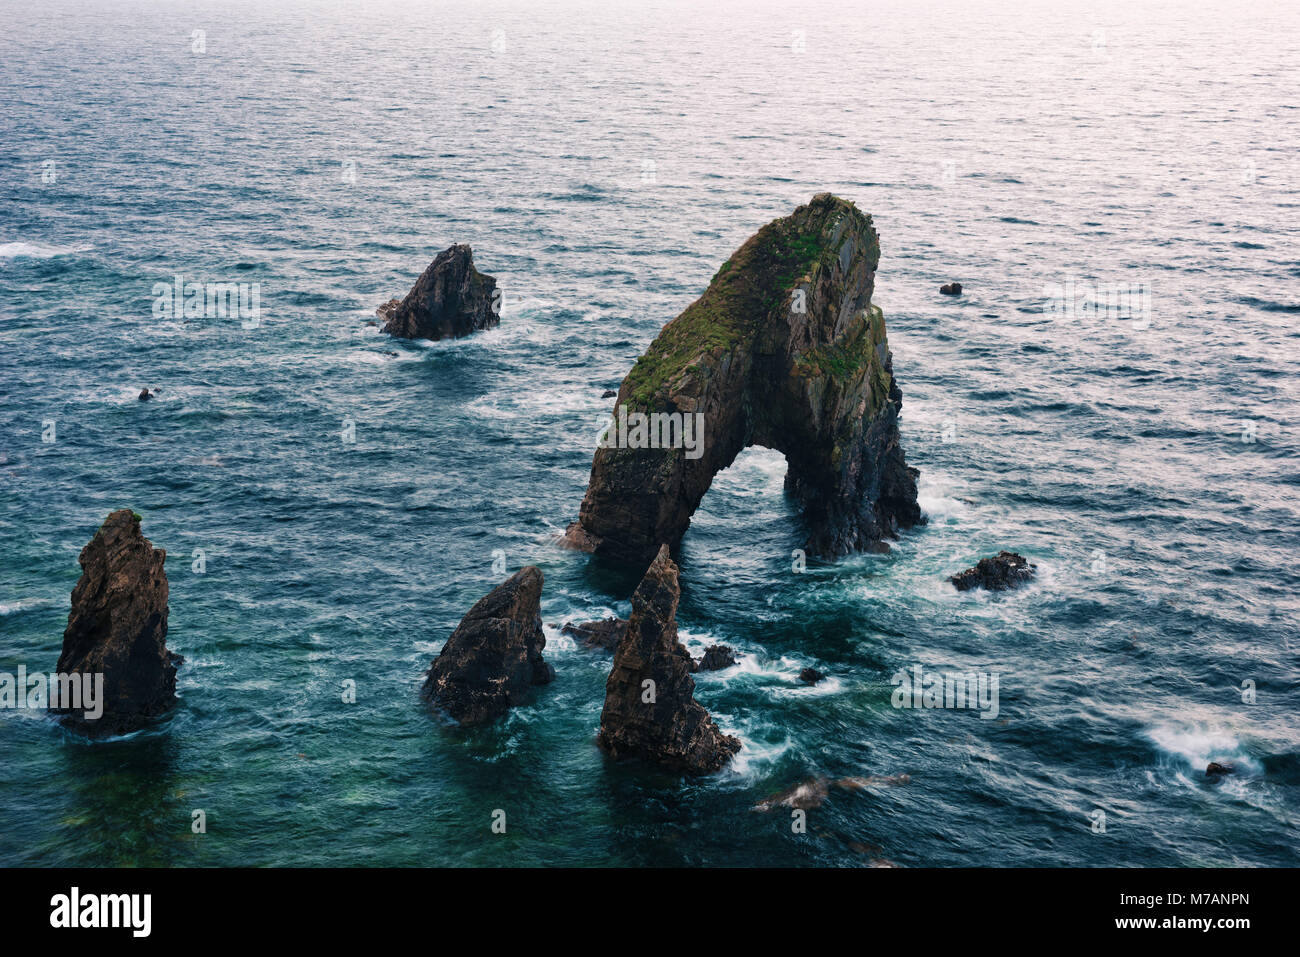 Rock formations 'The Breeches' in the sea, County Mayo, Ireland - Stock Image